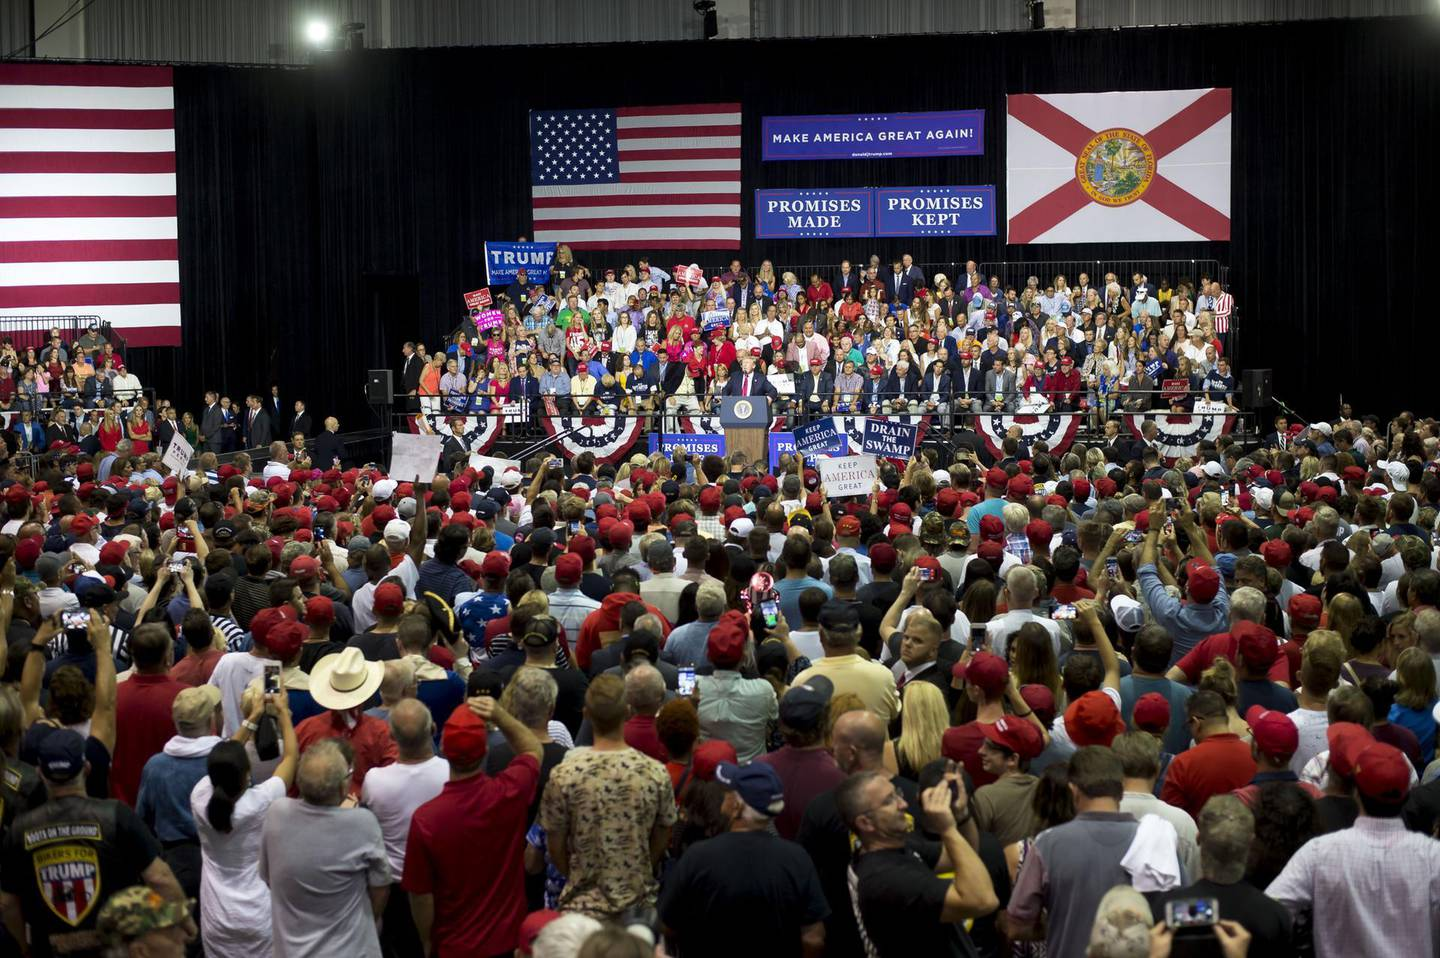 """U.S. President Donald Trump, center, addresses the crowd during a rally in Tampa, Florida, U.S., on Tuesday, July 31, 2018. Iranian Foreign Minister Javad Zarif pushed back on Trump's suggestion that he'd be willing to meet President Hassan Rouhani with """"no preconditions,"""" saying the two countries spent plenty of time in negotiations already. Photographer: Zack Wittman/Bloomberg"""